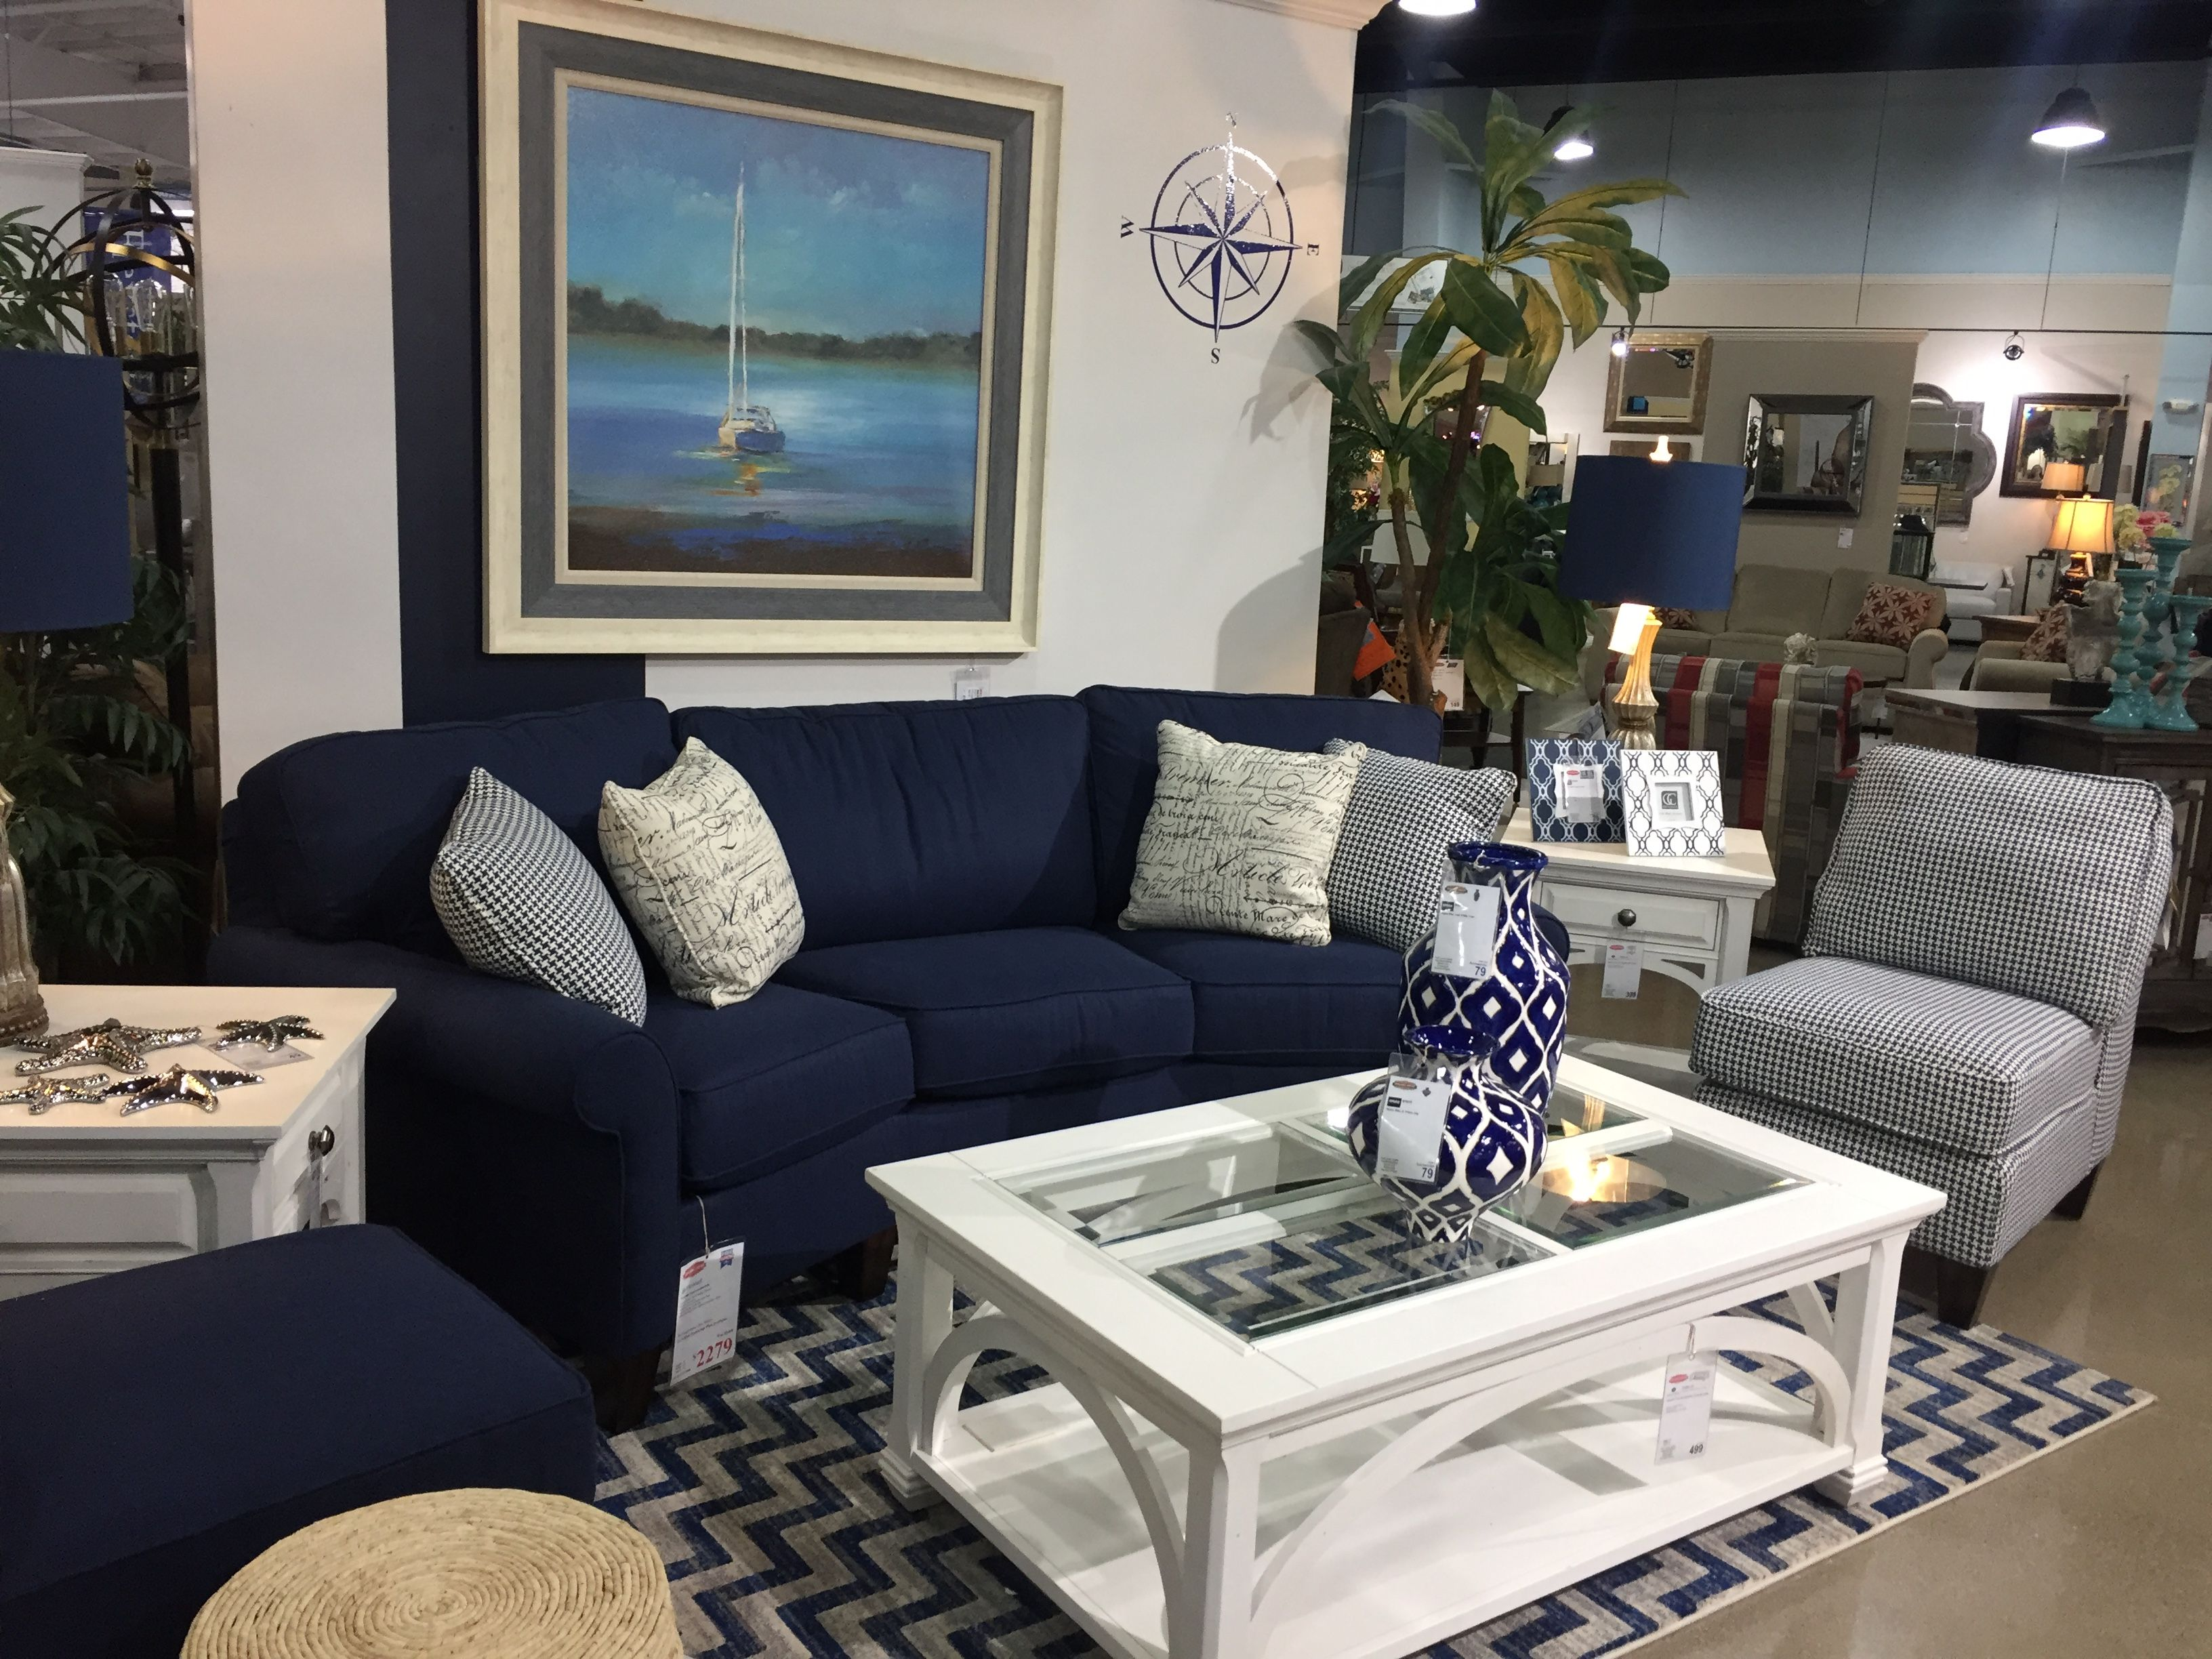 Need decorating tips? Check out Appliance Center Home